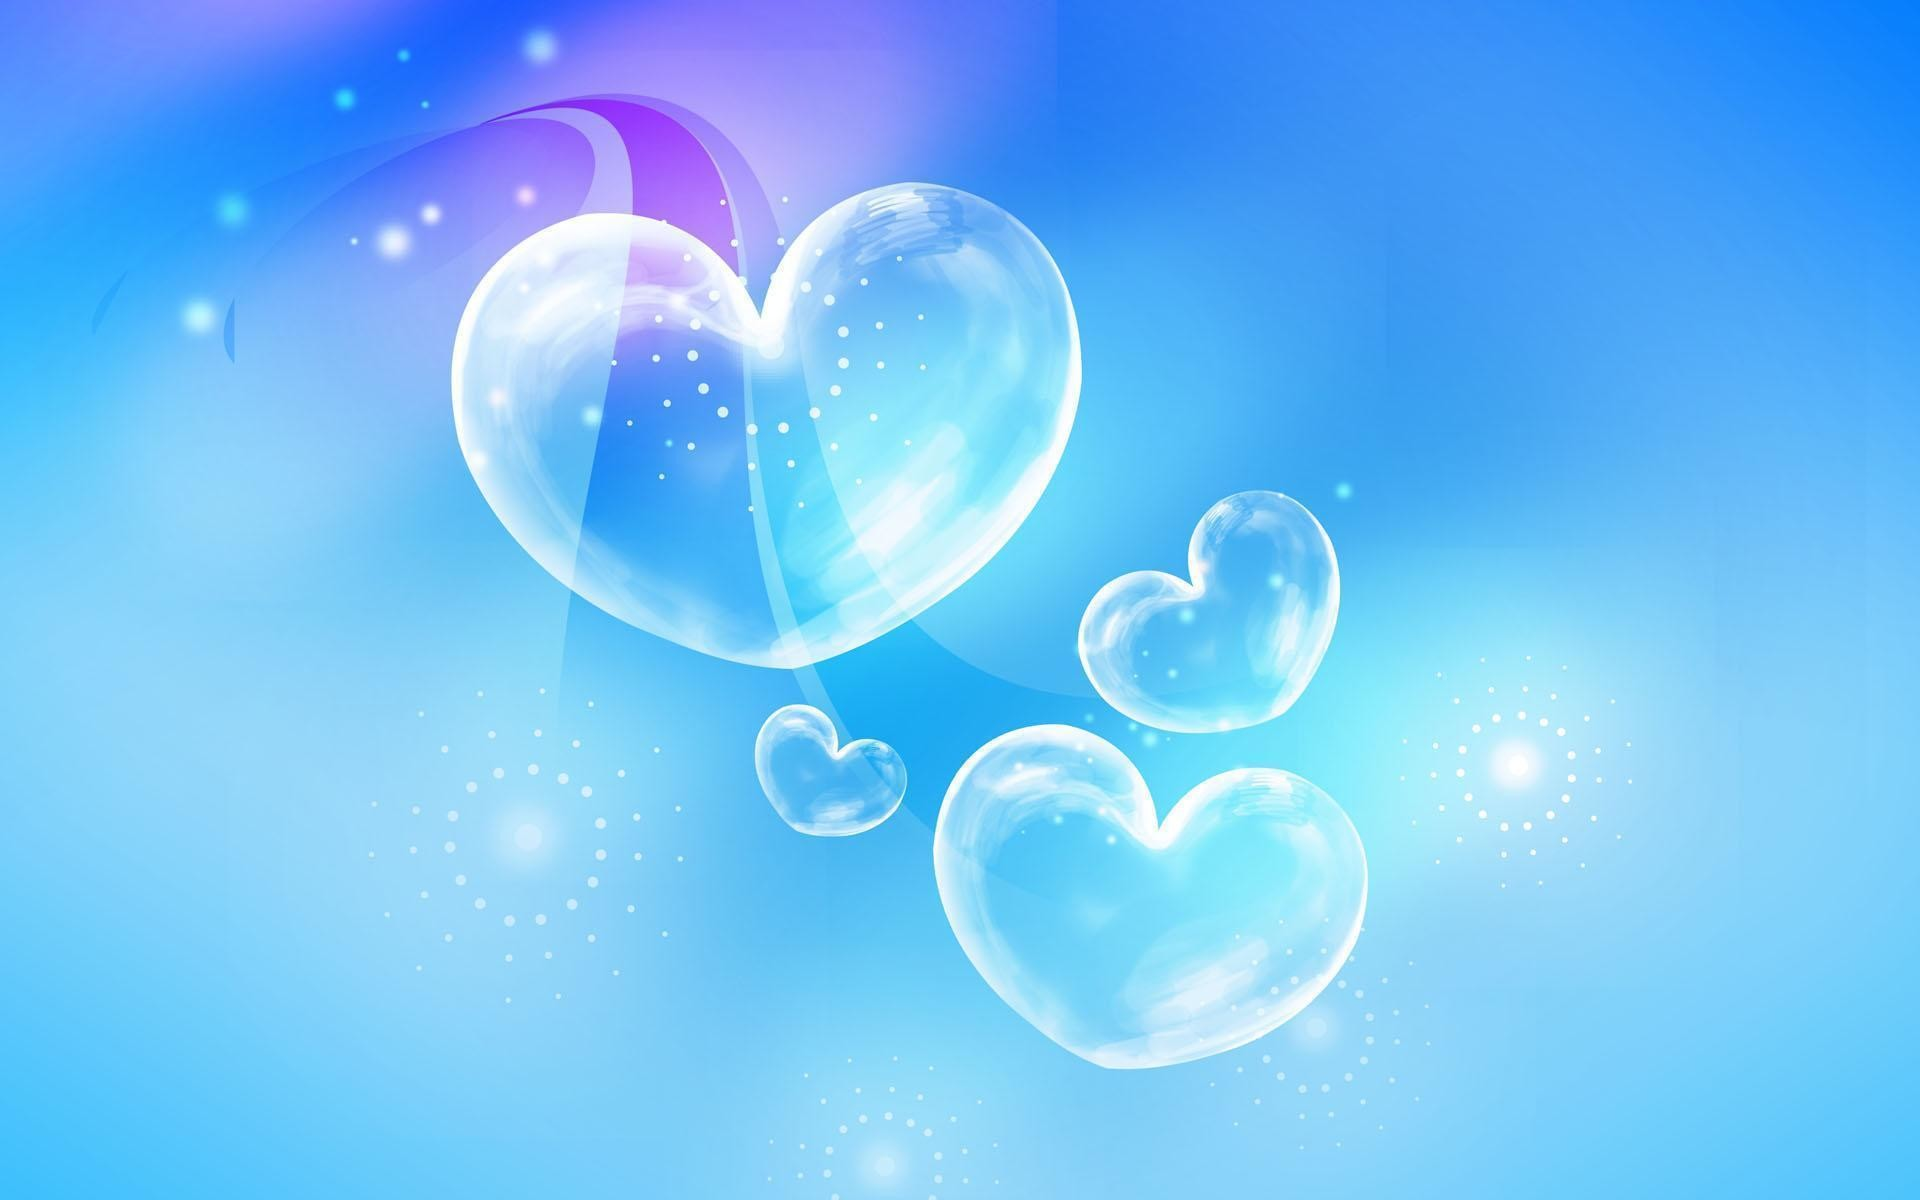 Blue Hearts Background Wallpaper